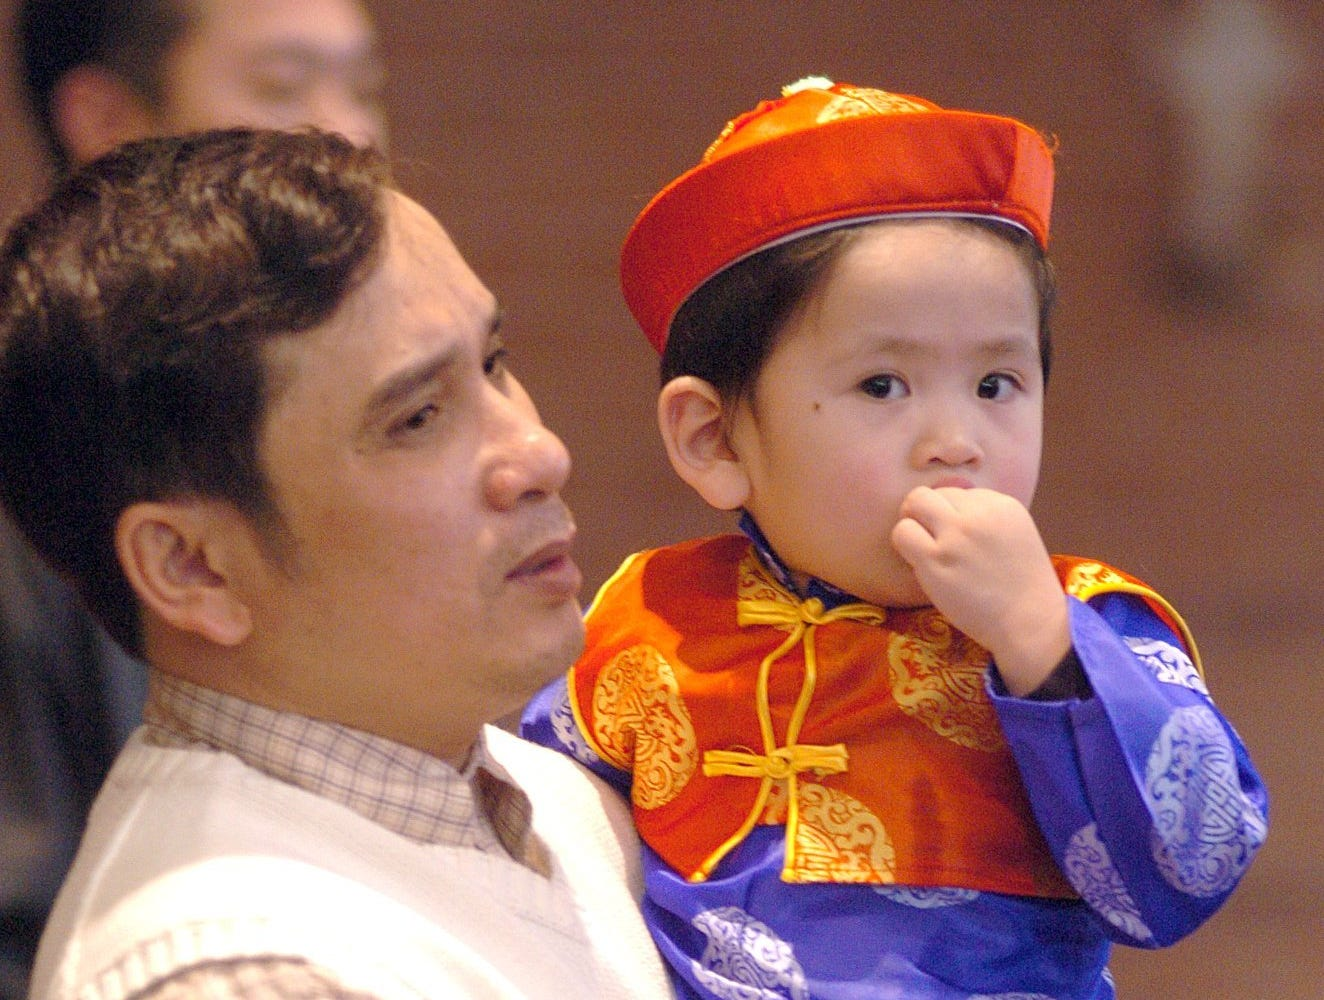 Dung Tran holds son Robert Nguyen, 2, during a mass for members of the Vietnamese community to celebrate the Chinese New Year at the St. Therese Catholic Church in Jackson. At a reception following the service, church members ate, sang and performed a traditional dragon dance.